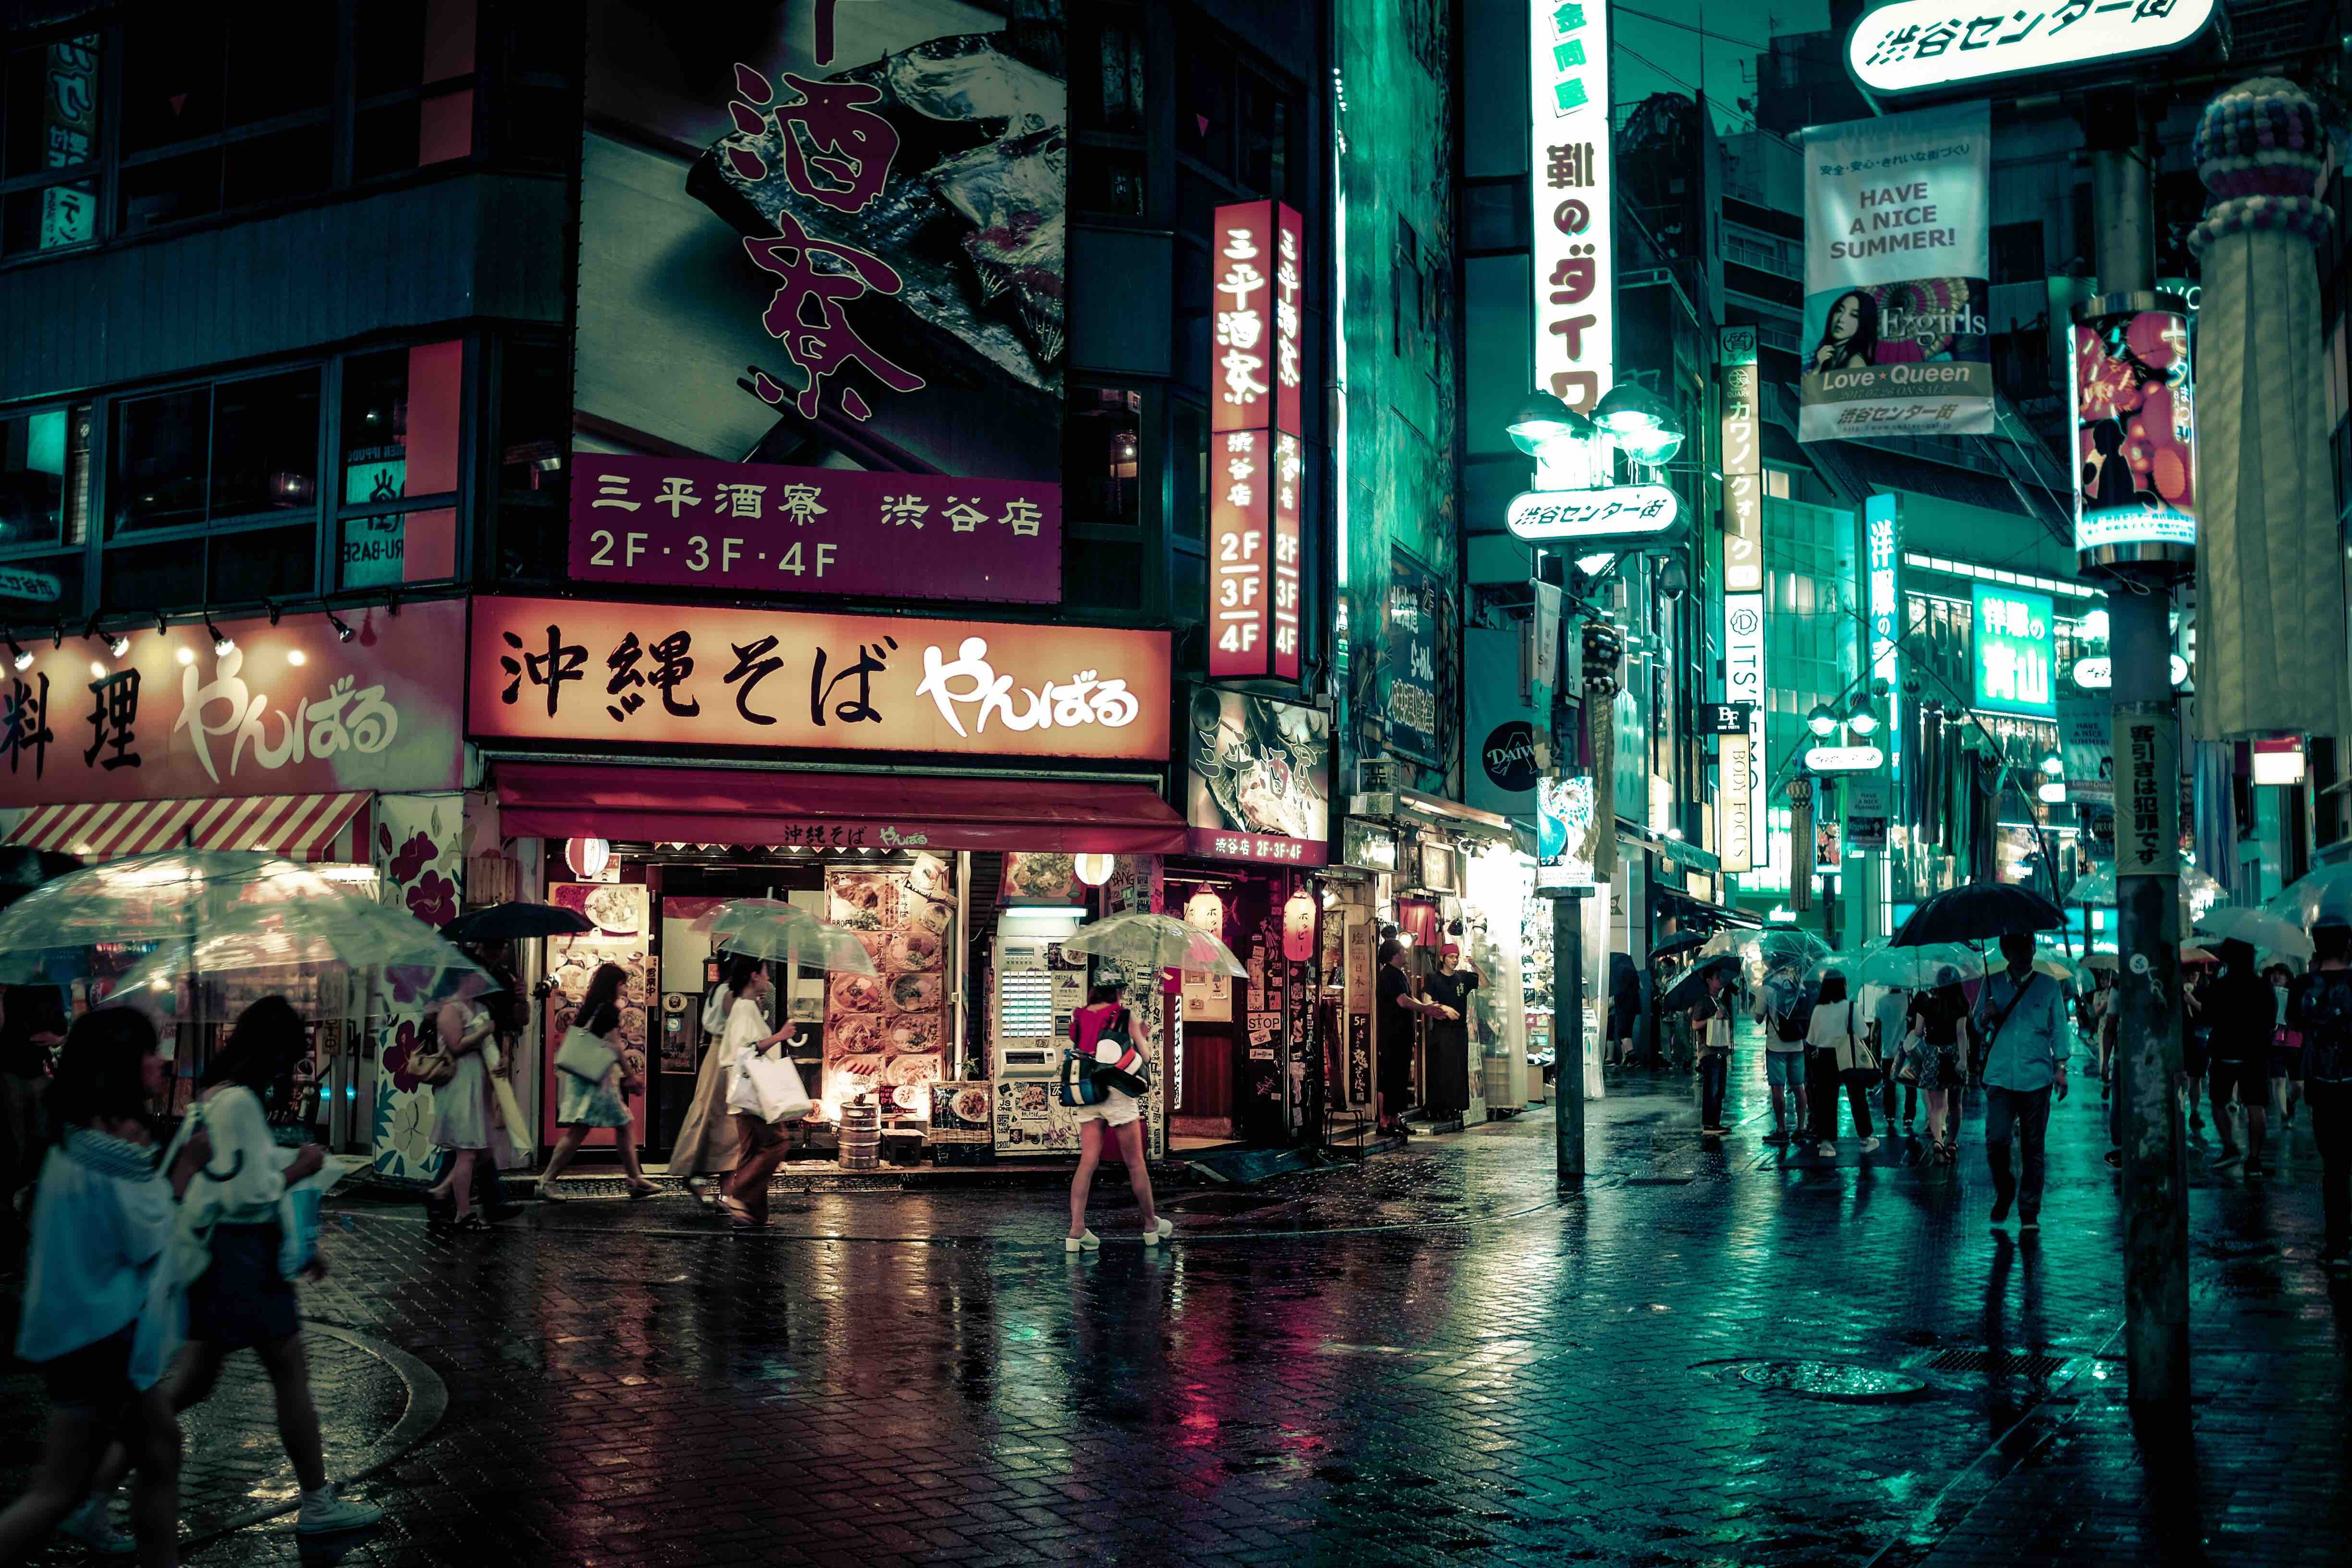 People with umbrellas in a busy street in Tokyo at night